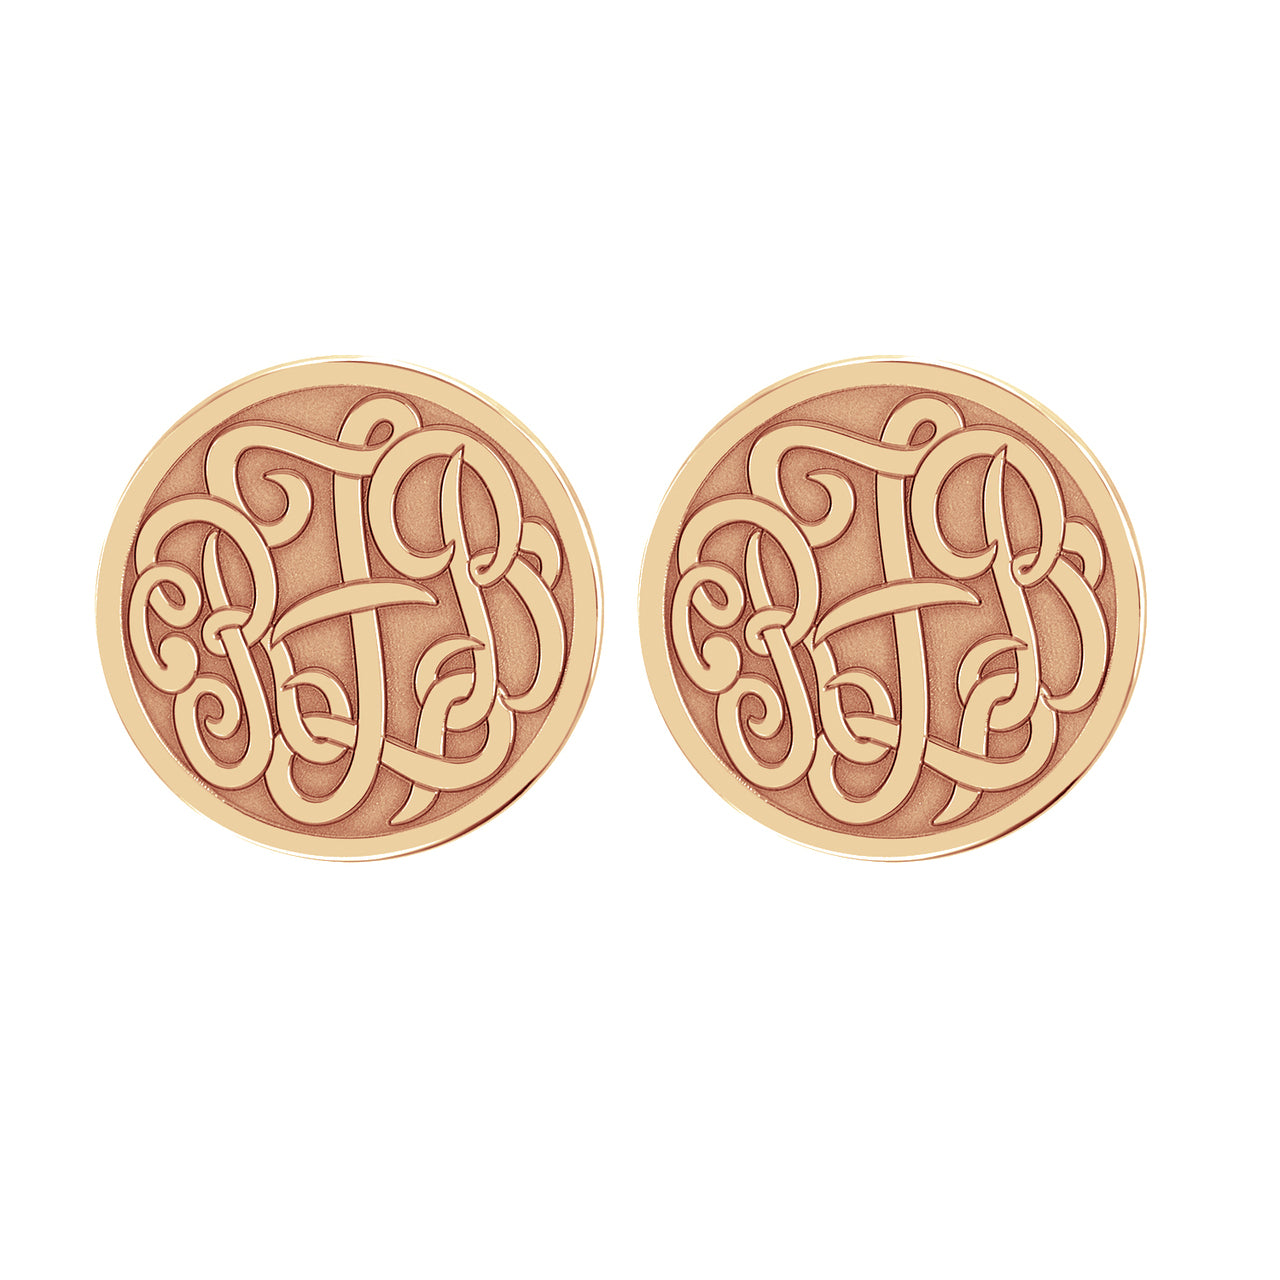 Fink's 20mm Classic Recessed Monogram Stud Earrings